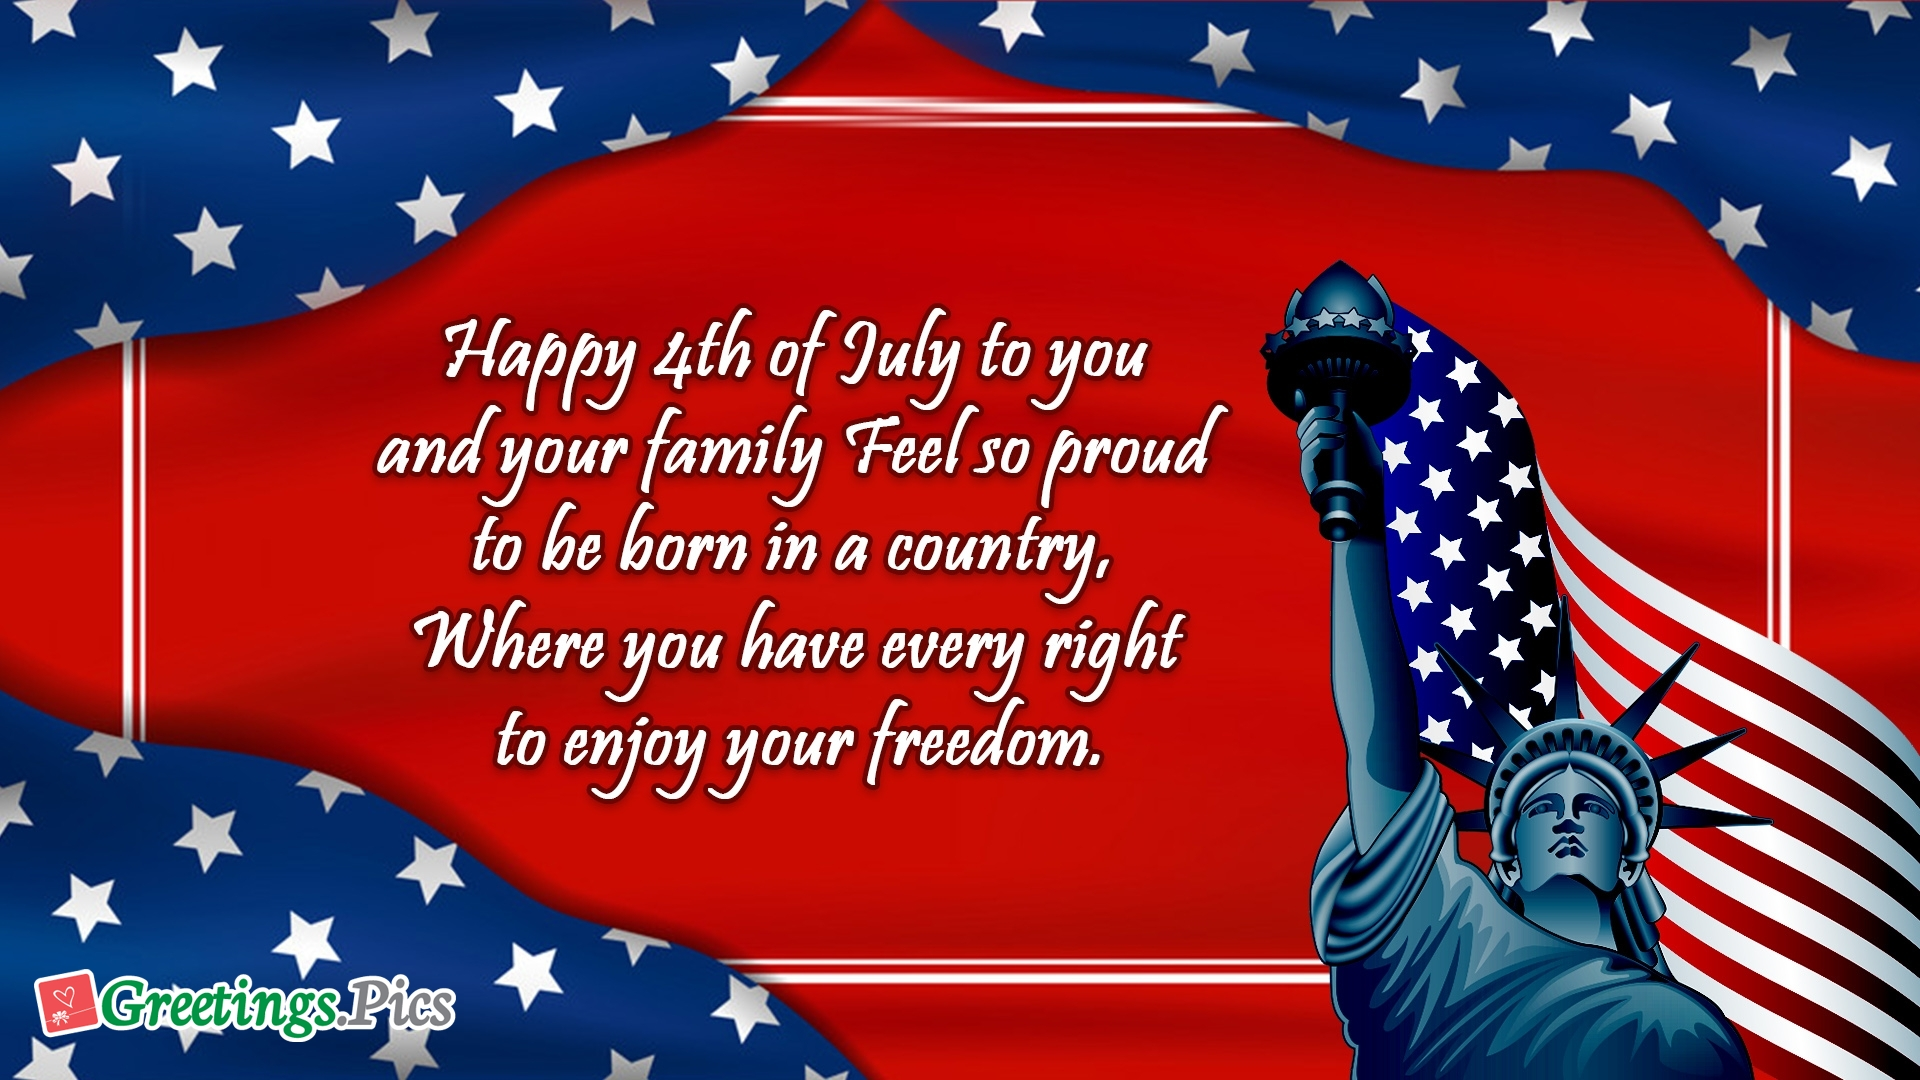 Happy 4th Of July To You and Your Family. Feel So Proud To Be Born